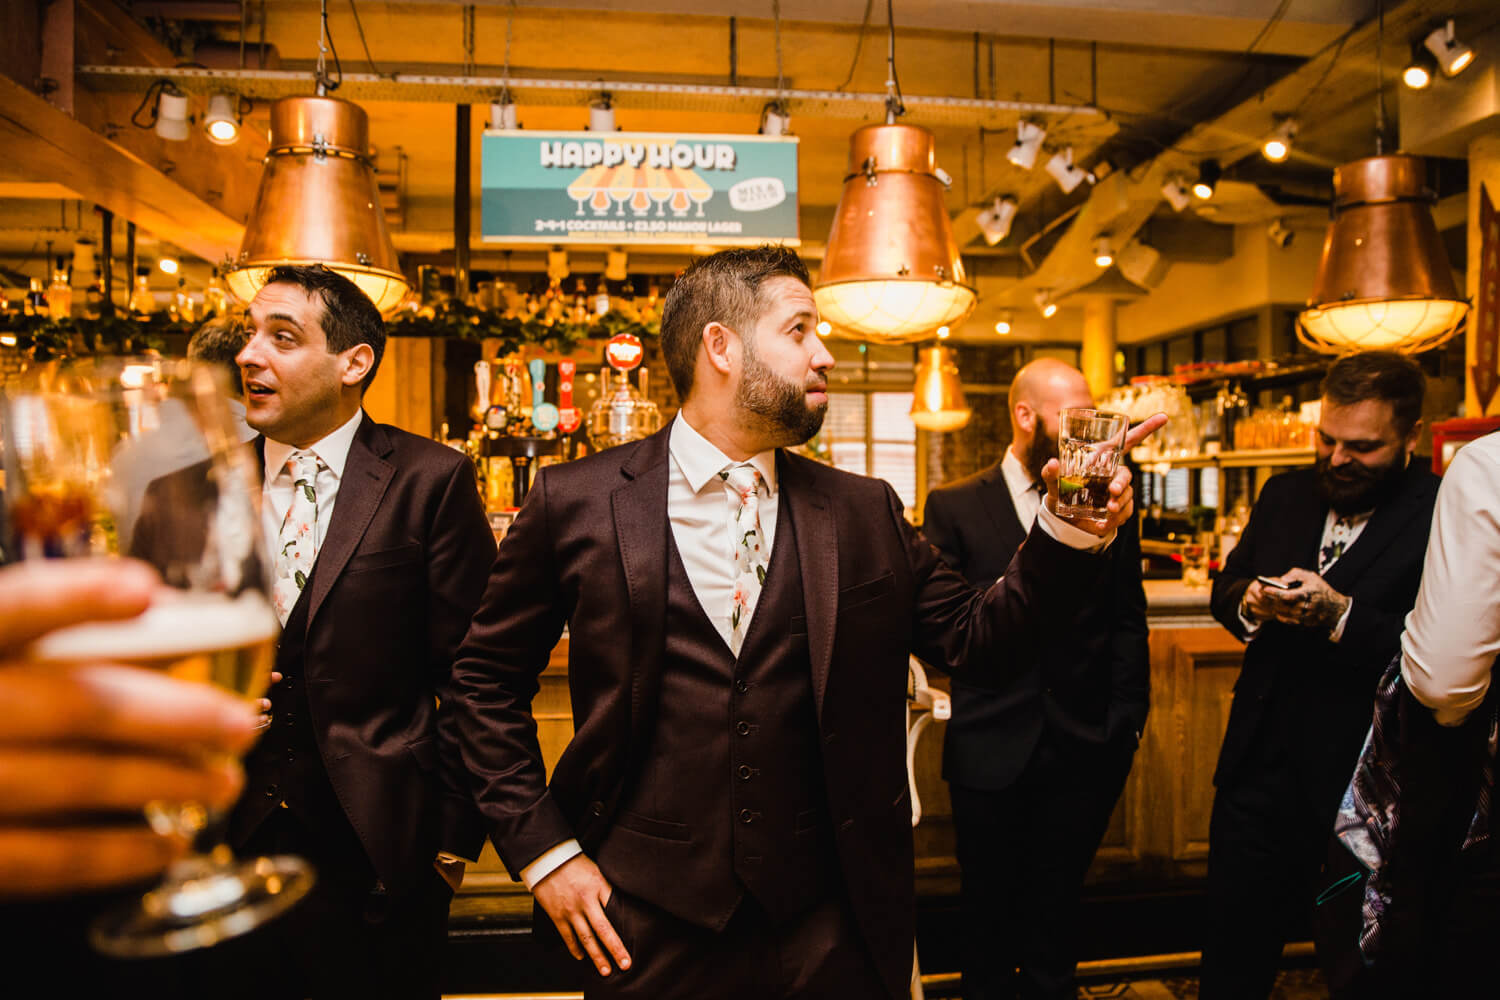 groom at the bar with groomsmen posing for photograph